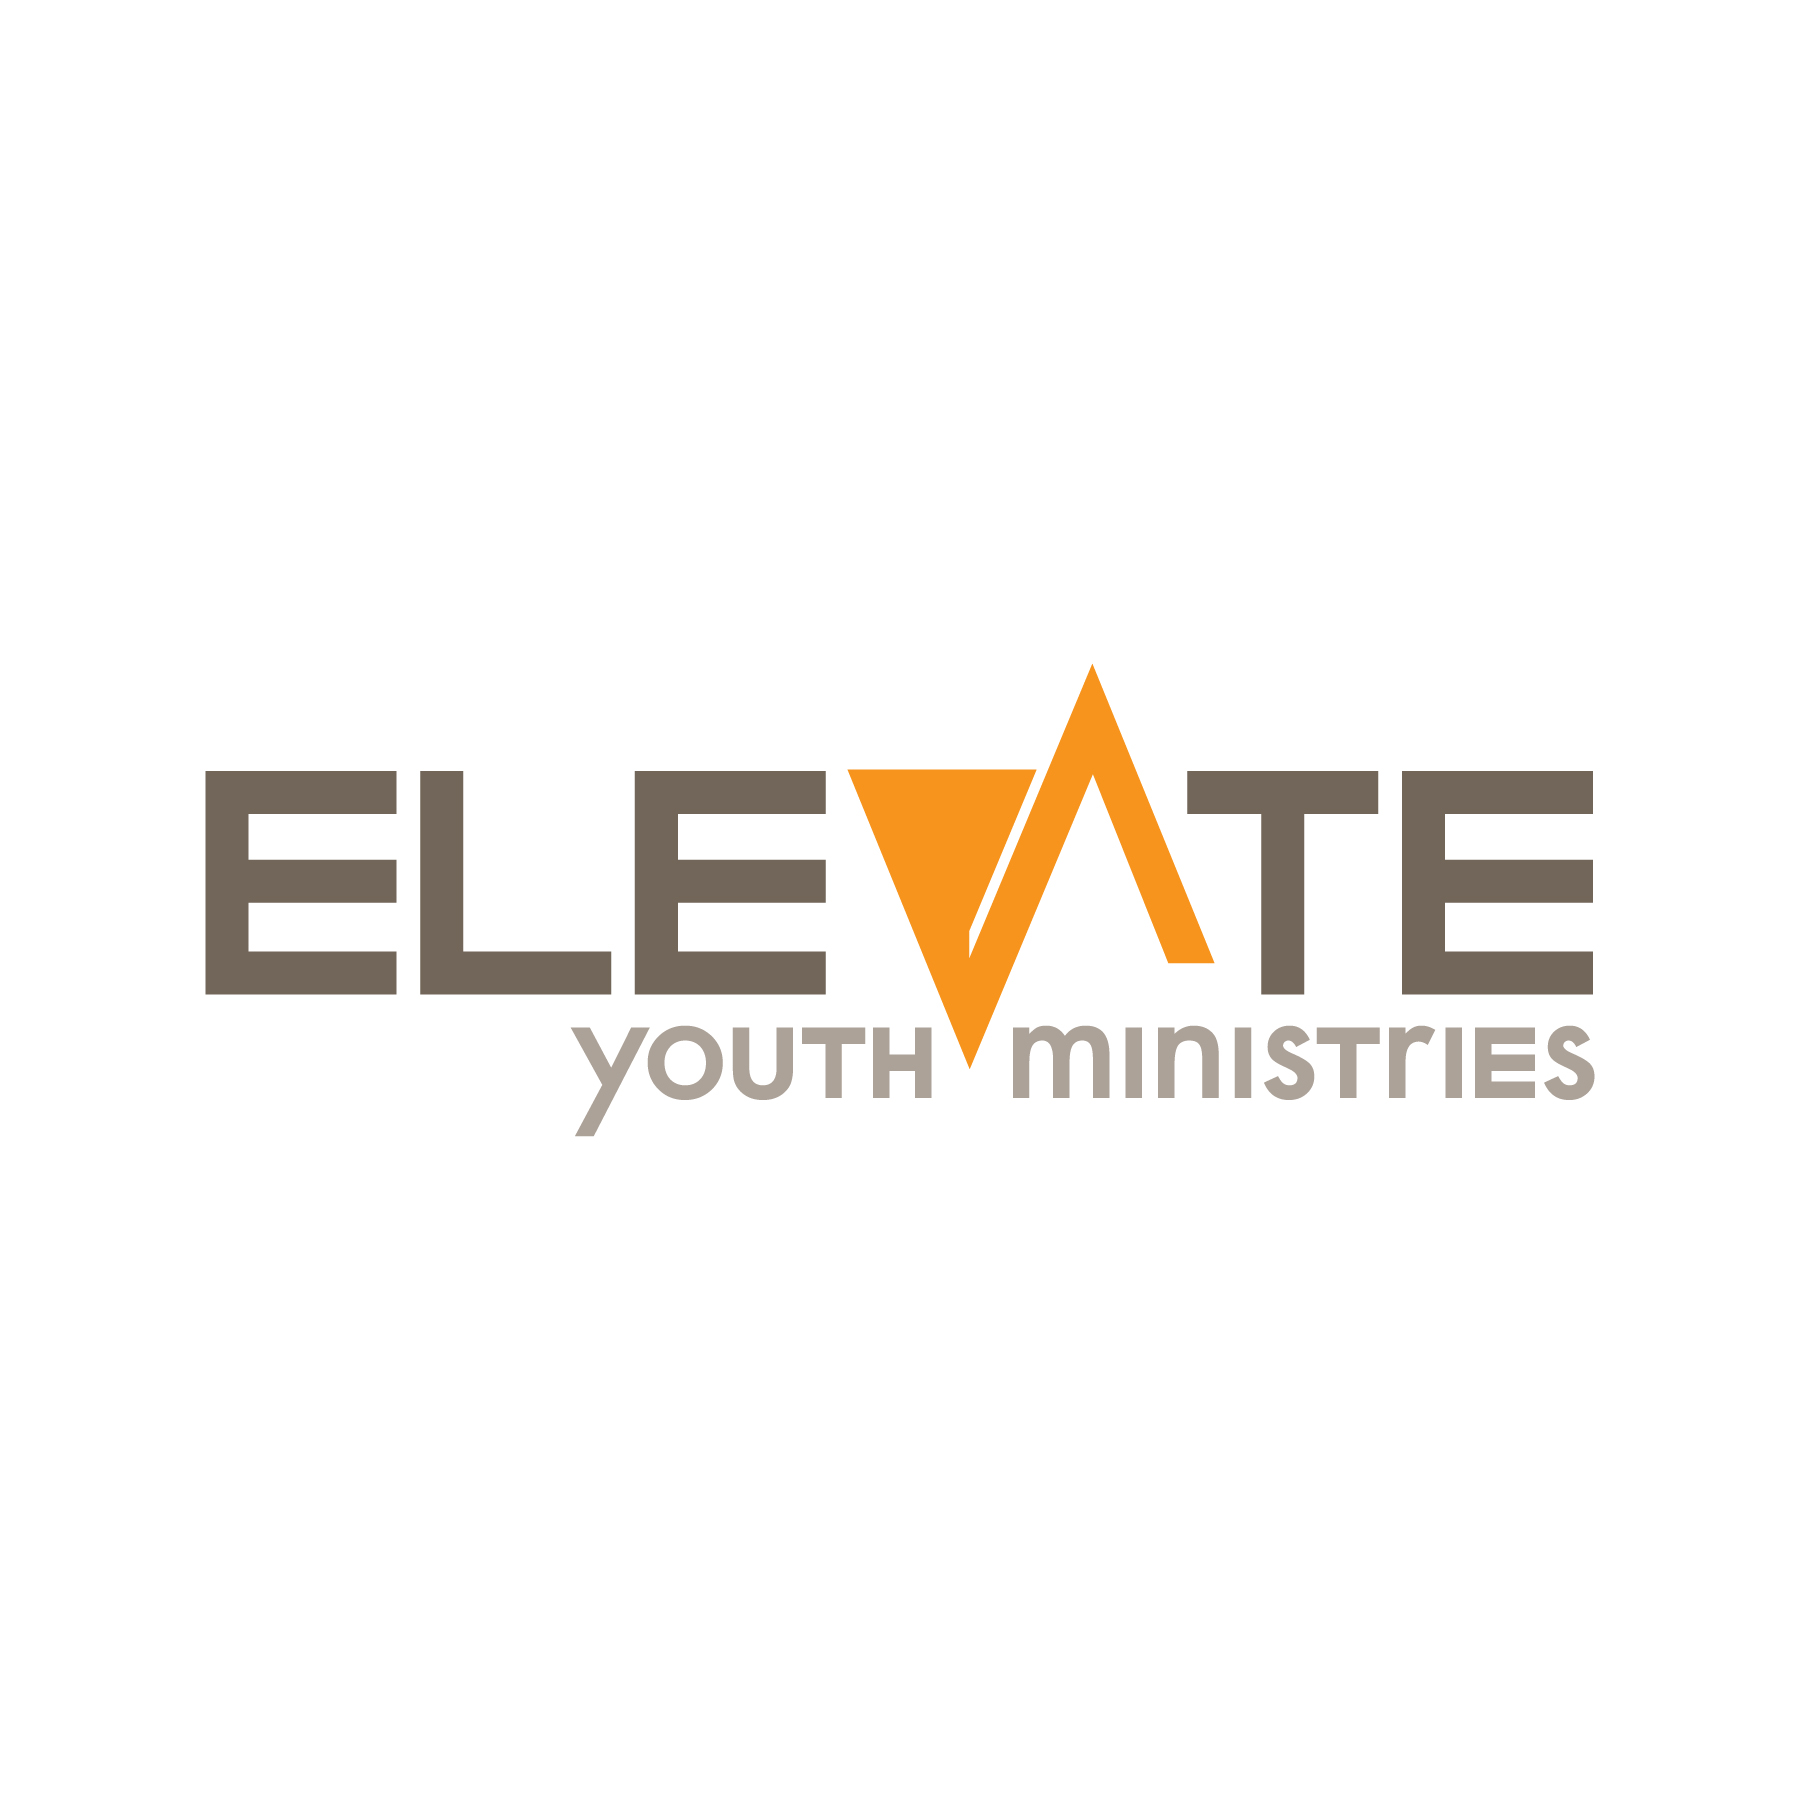 elevateyouth.jpg